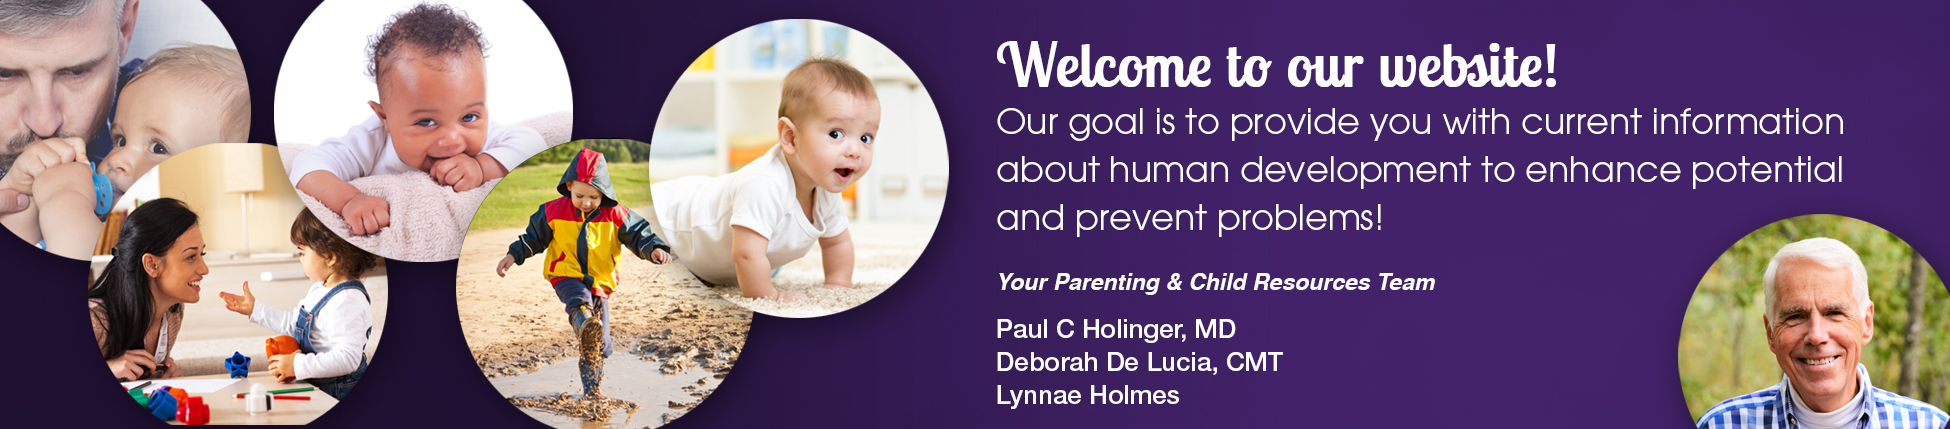 Welcome to Parenting & Child Resources with Paul C. Holinger, MD